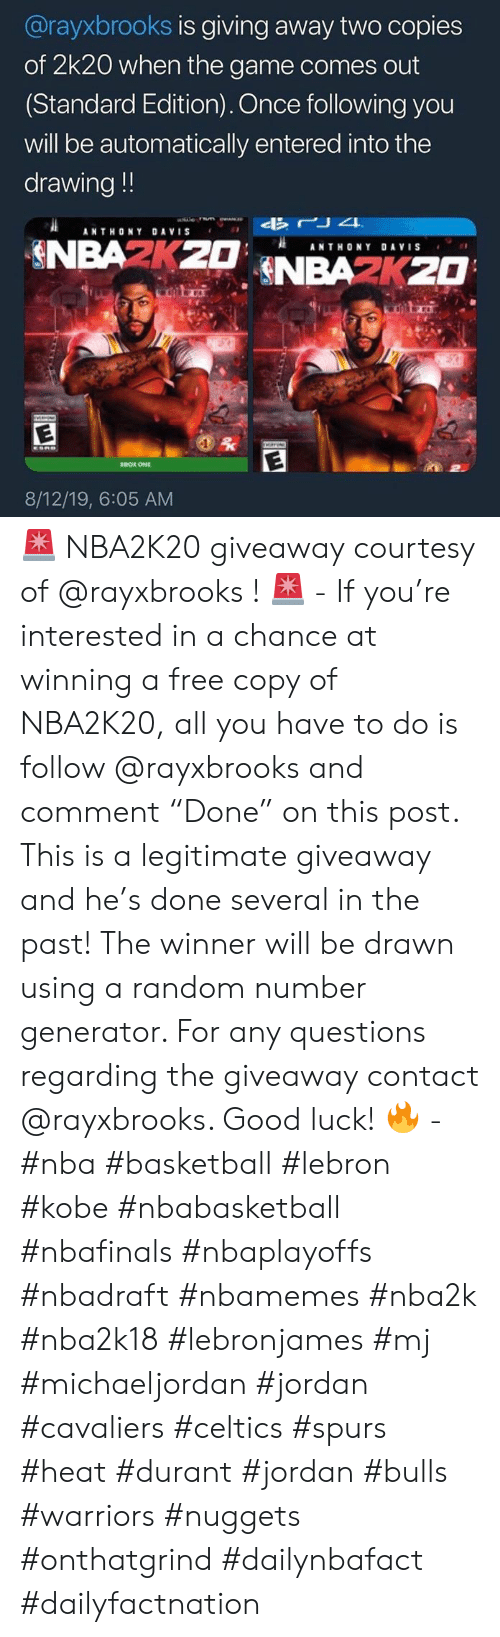 "Basketball, Nba, and The Game: @rayxbrooks is giving away two copies  of 2k20 when the game comes out  (Standard Edition). Once following you  will be automatically entered into the  drawing!!  rJ4  ANTHONY DAVIS  NBAZKZDNBAZKZO  ANTHONY DAVIS  NEX  EOK ONE  8/12/19, 6:05 AM 🚨 NBA2K20 giveaway courtesy of @rayxbrooks ! 🚨 - If you're interested in a chance at winning a free copy of NBA2K20, all you have to do is follow @rayxbrooks and comment ""Done"" on this post. This is a legitimate giveaway and he's done several in the past! The winner will be drawn using a random number generator. For any questions regarding the giveaway contact @rayxbrooks. Good luck! 🔥 - #nba #basketball #lebron #kobe #nbabasketball #nbafinals #nbaplayoffs #nbadraft #nbamemes #nba2k #nba2k18 #lebronjames #mj #michaeljordan #jordan #cavaliers #celtics #spurs #heat #durant #jordan #bulls #warriors #nuggets #onthatgrind #dailynbafact #dailyfactnation"